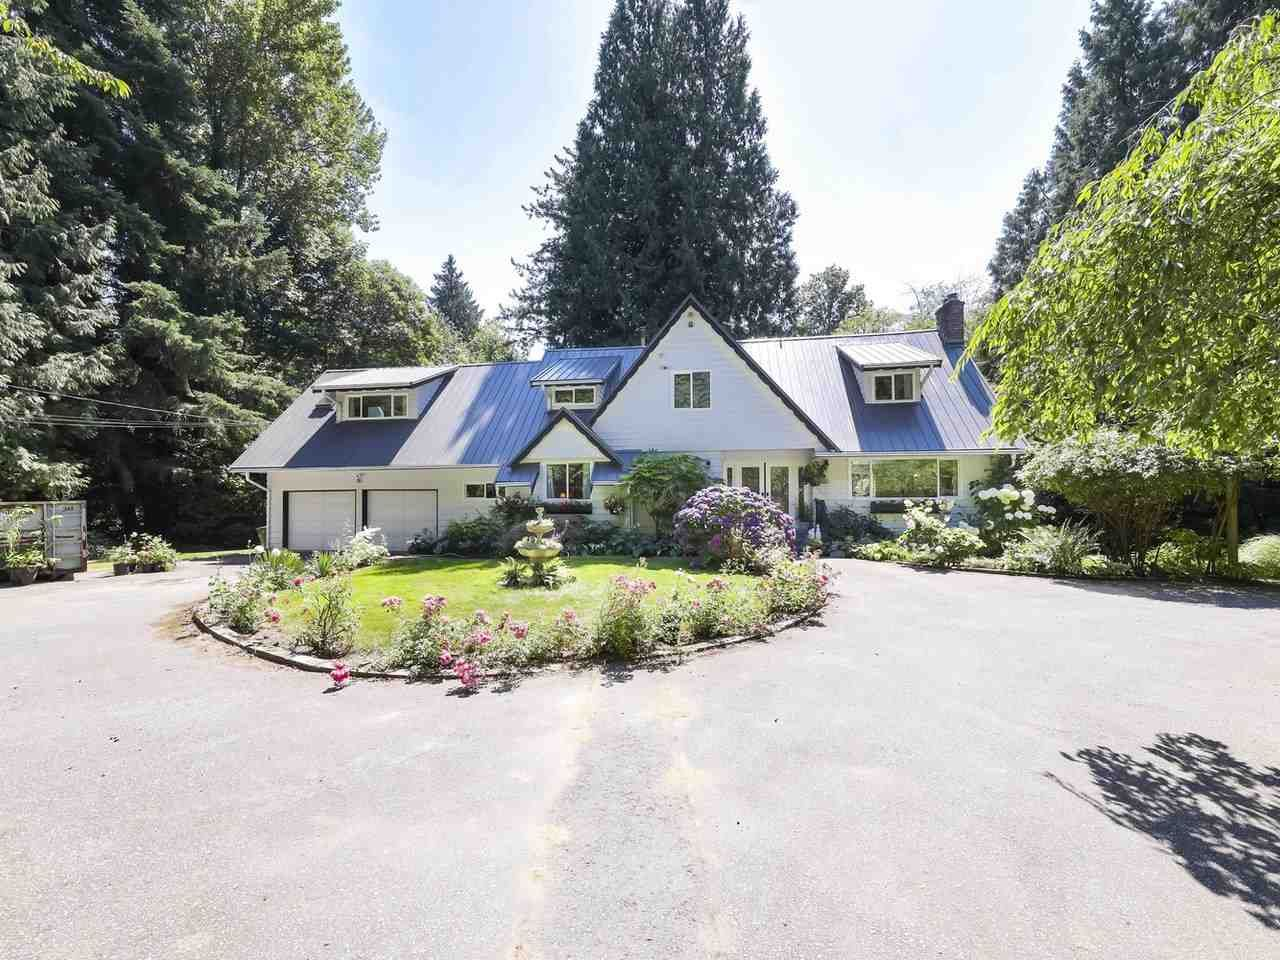 Main Photo: 14310 66 Avenue in Surrey: East Newton House for sale : MLS®# R2482336